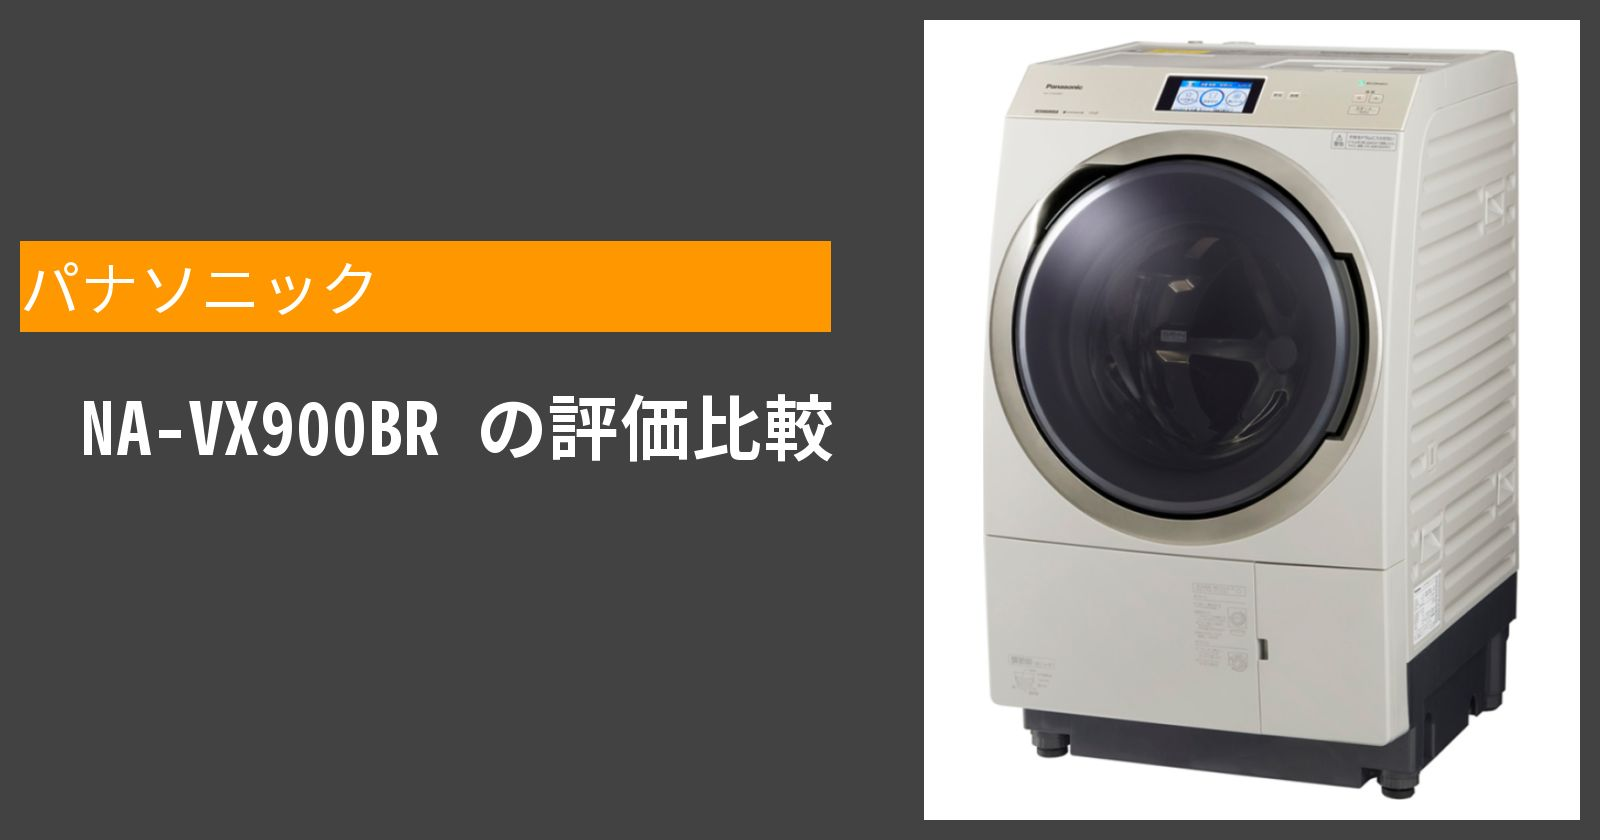 NA-VX900BRを徹底評価